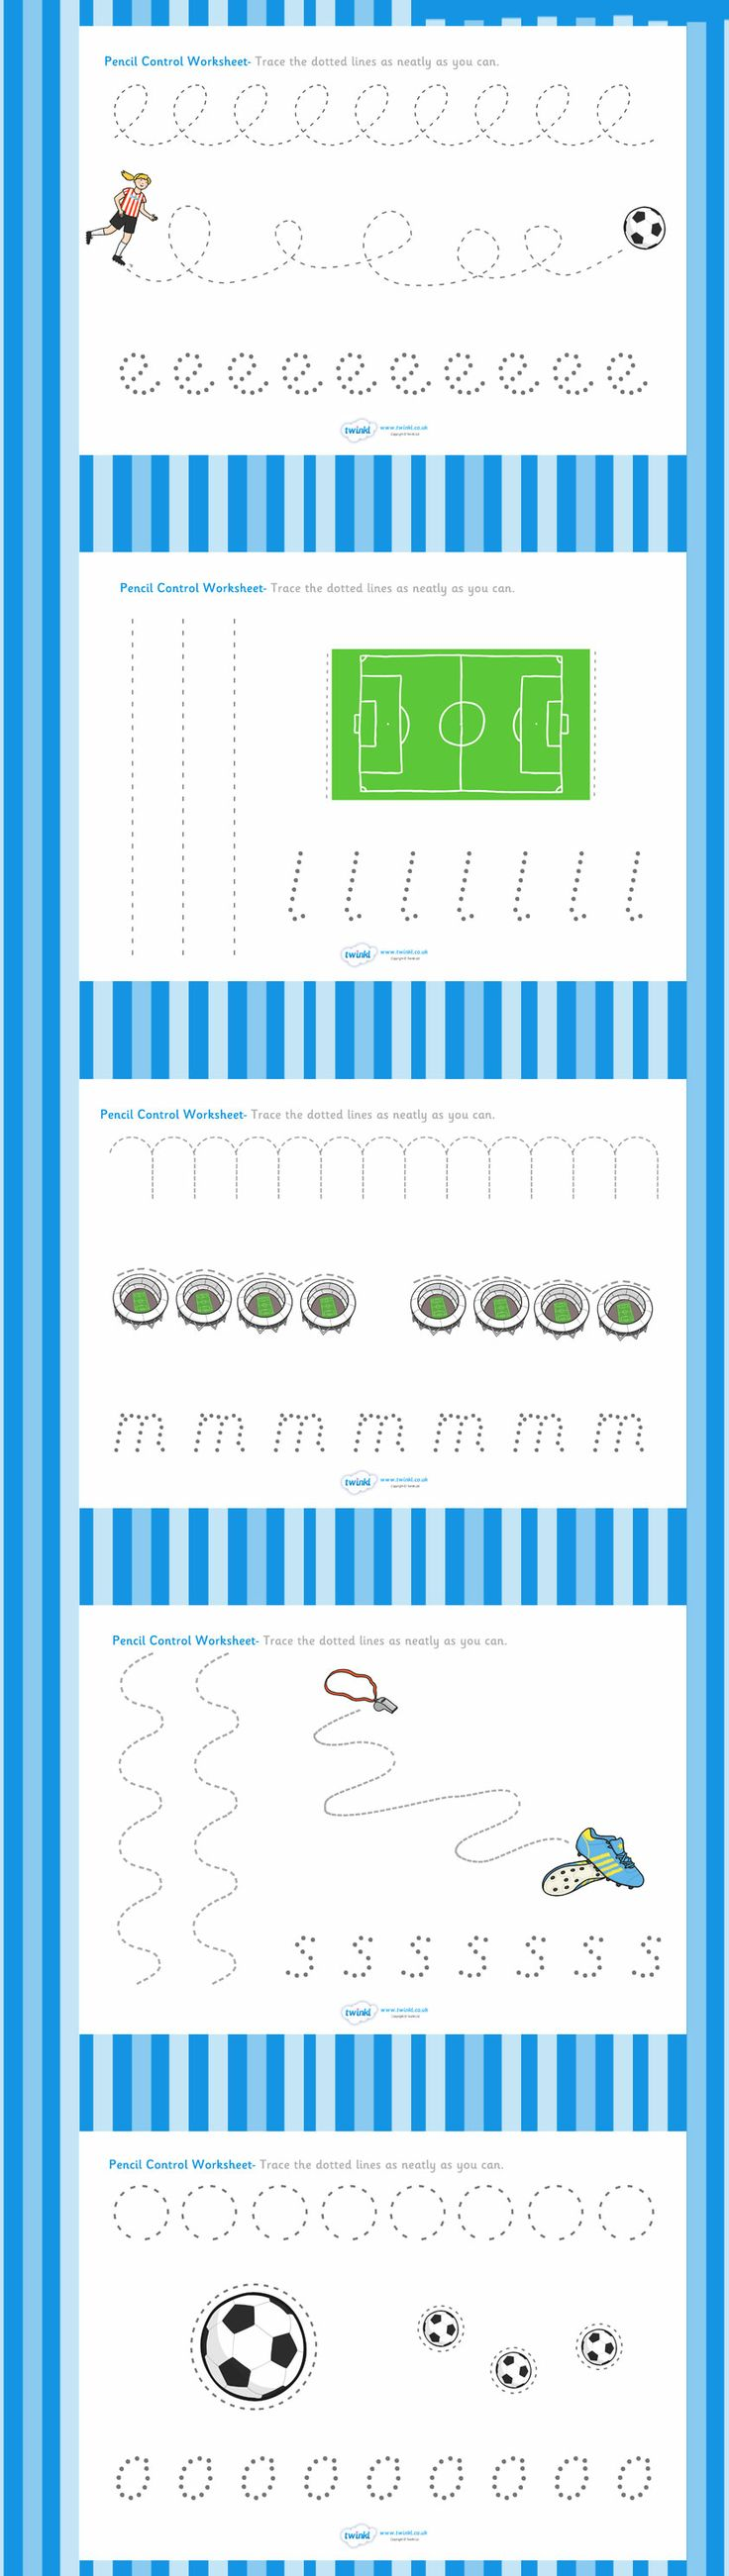 Football/World Cup- Pencil Control Worksheets